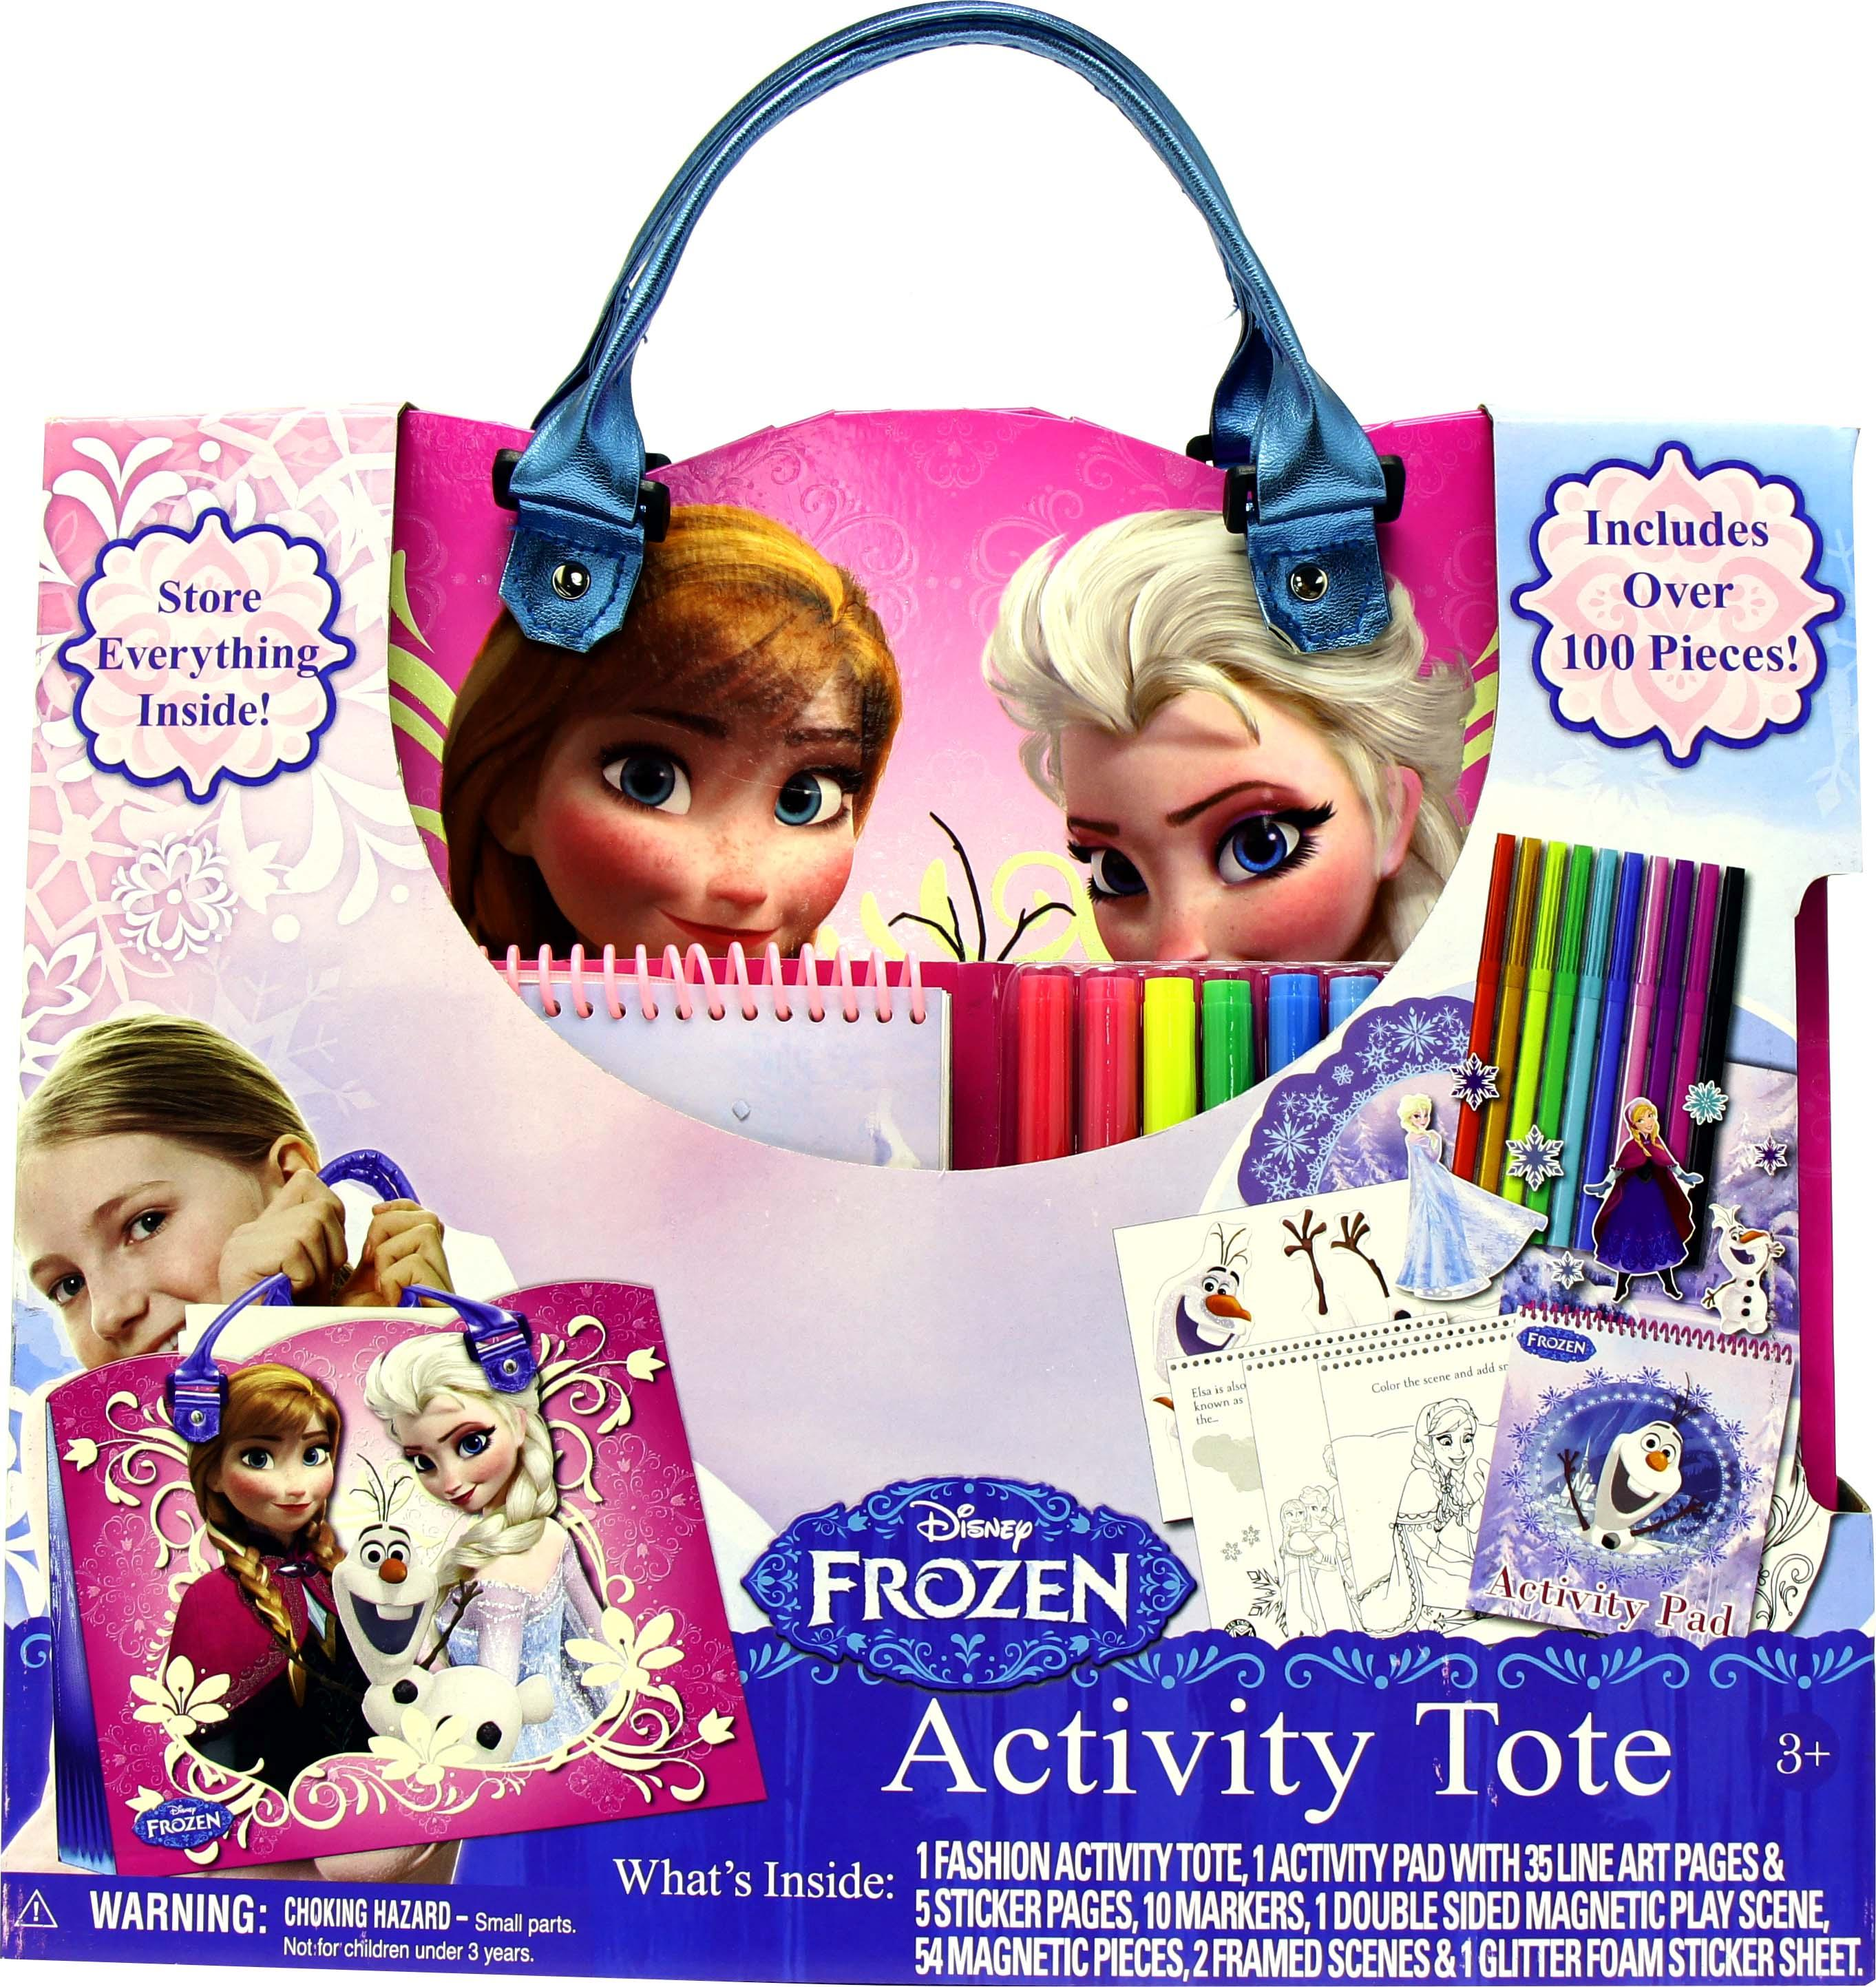 Frozen coloring pages amazon - From The Manufacturer